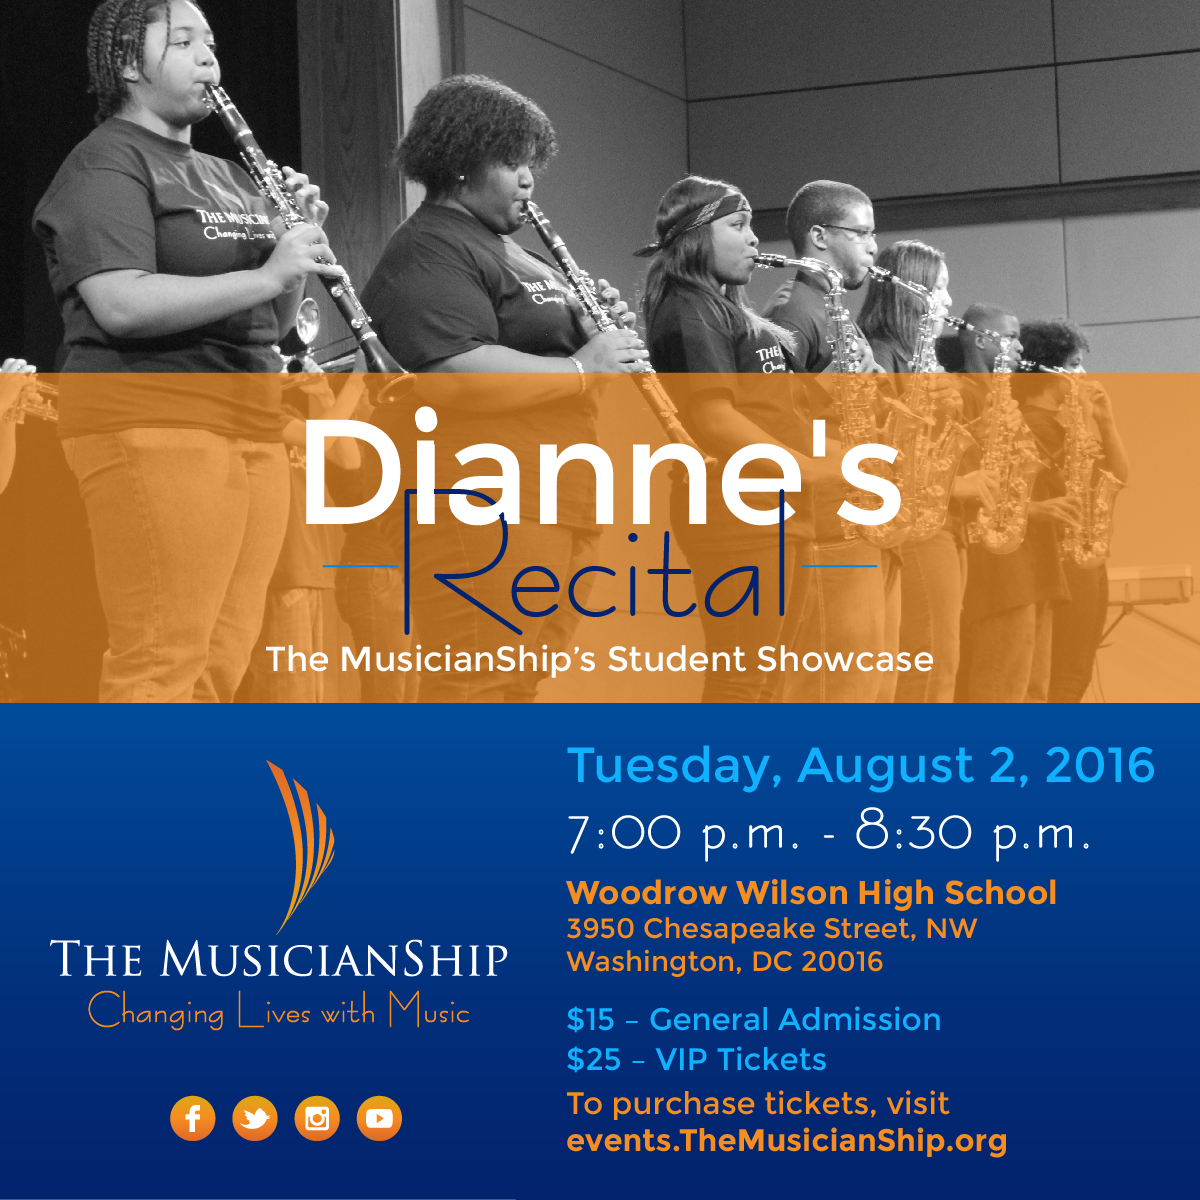 Dianne's Recital Flyer